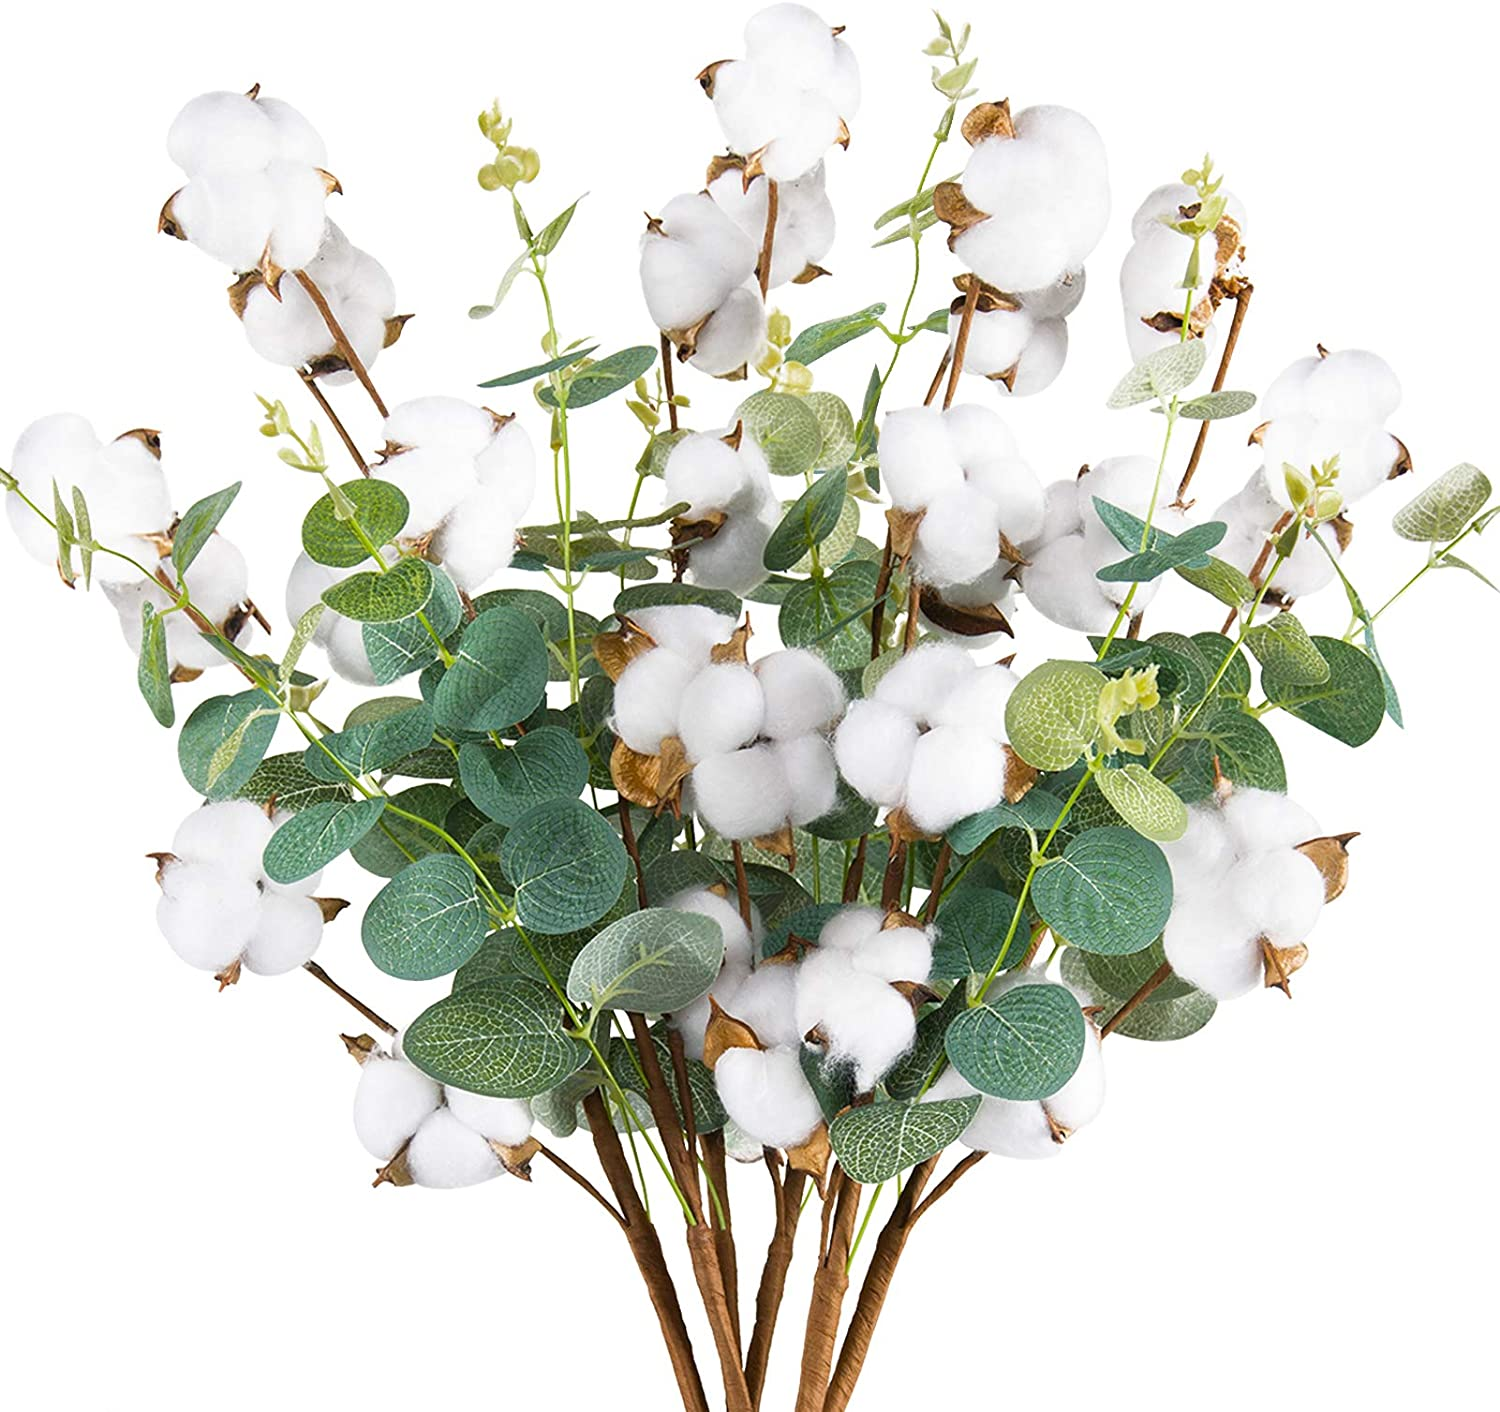 Miracliy 6 PCS Cotton Stems Decor with Eucalyptus Leaves 4 Cotton Heads for Farmhouse Style Floral Decorations 20""